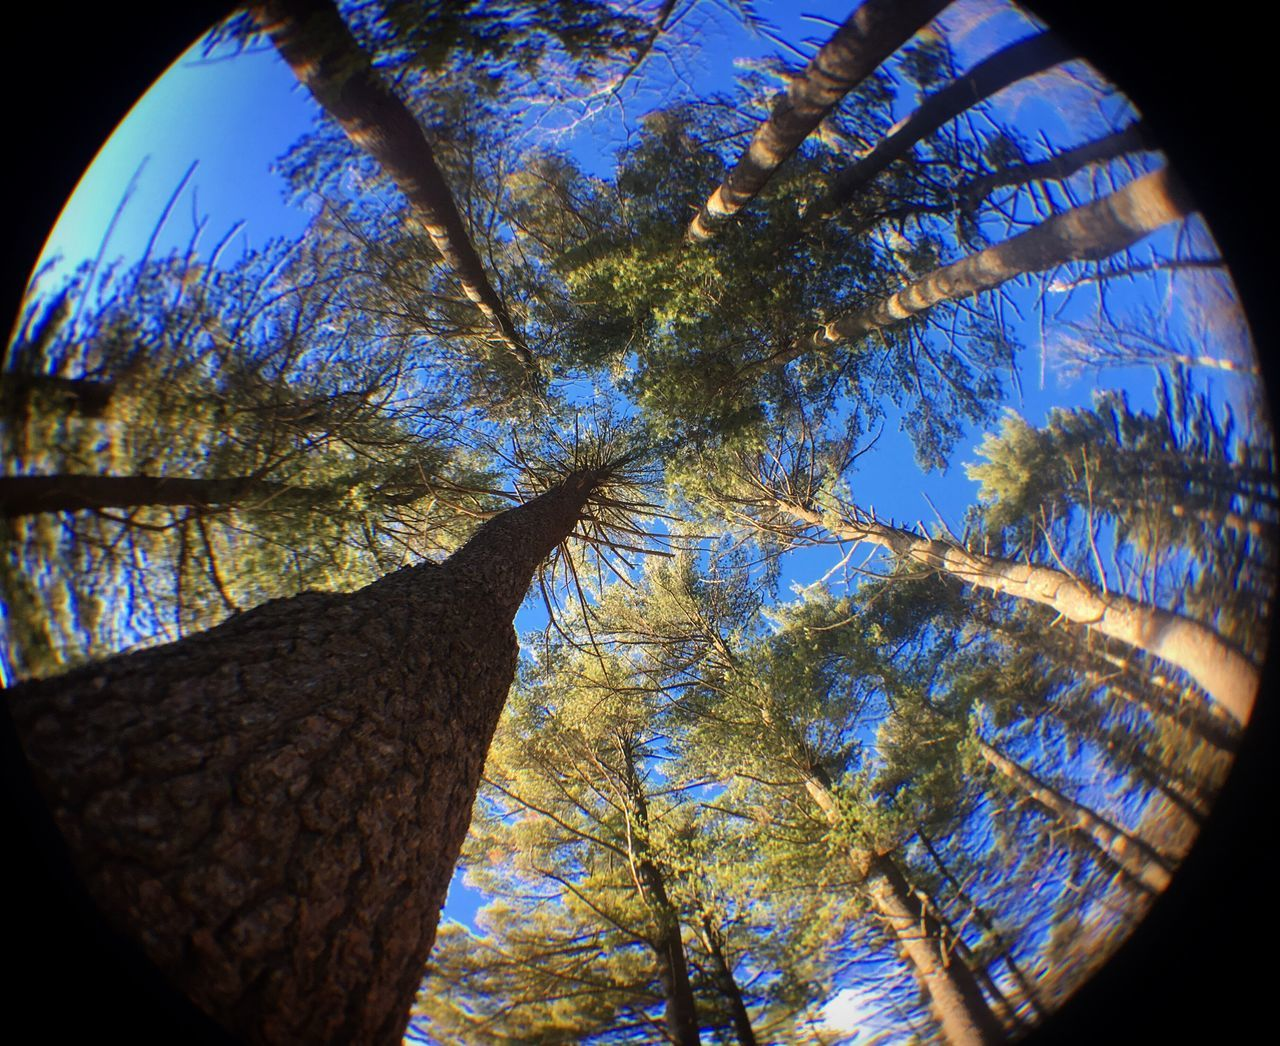 tree, tree trunk, low angle view, branch, autumn, nature, growth, leaf, beauty in nature, day, no people, outdoors, sky, fish-eye lens, close-up